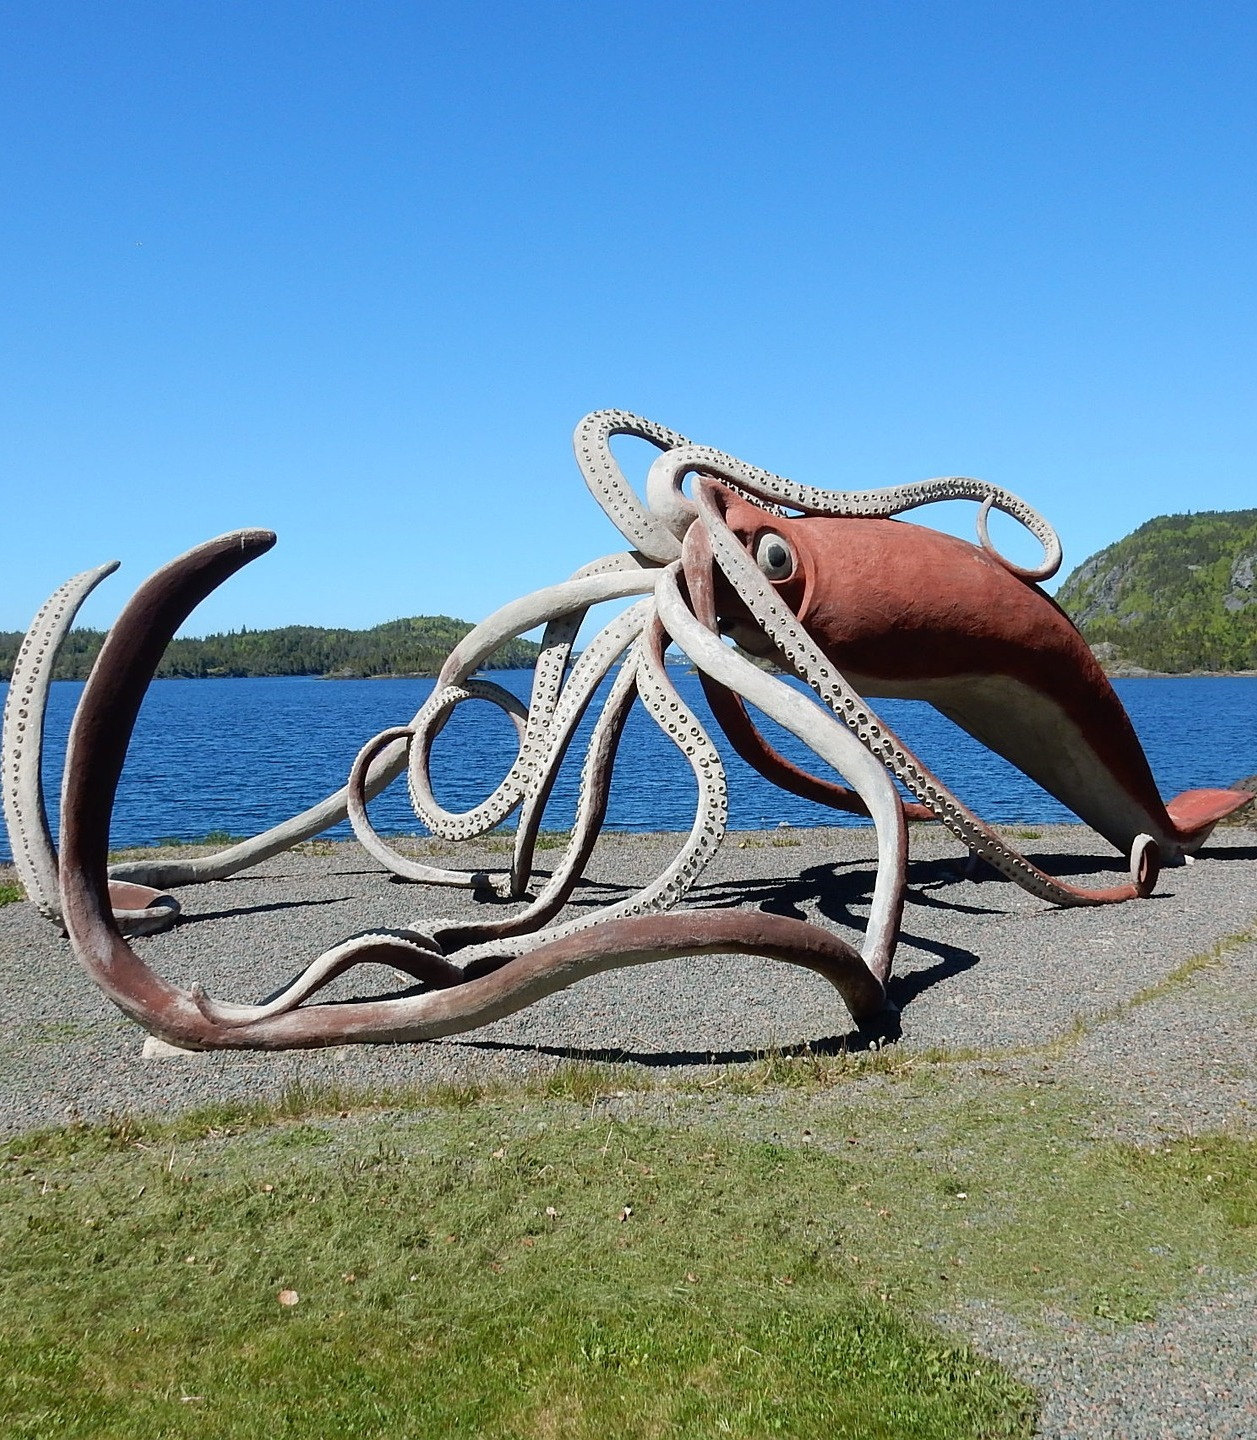 A giant squid sculpture.